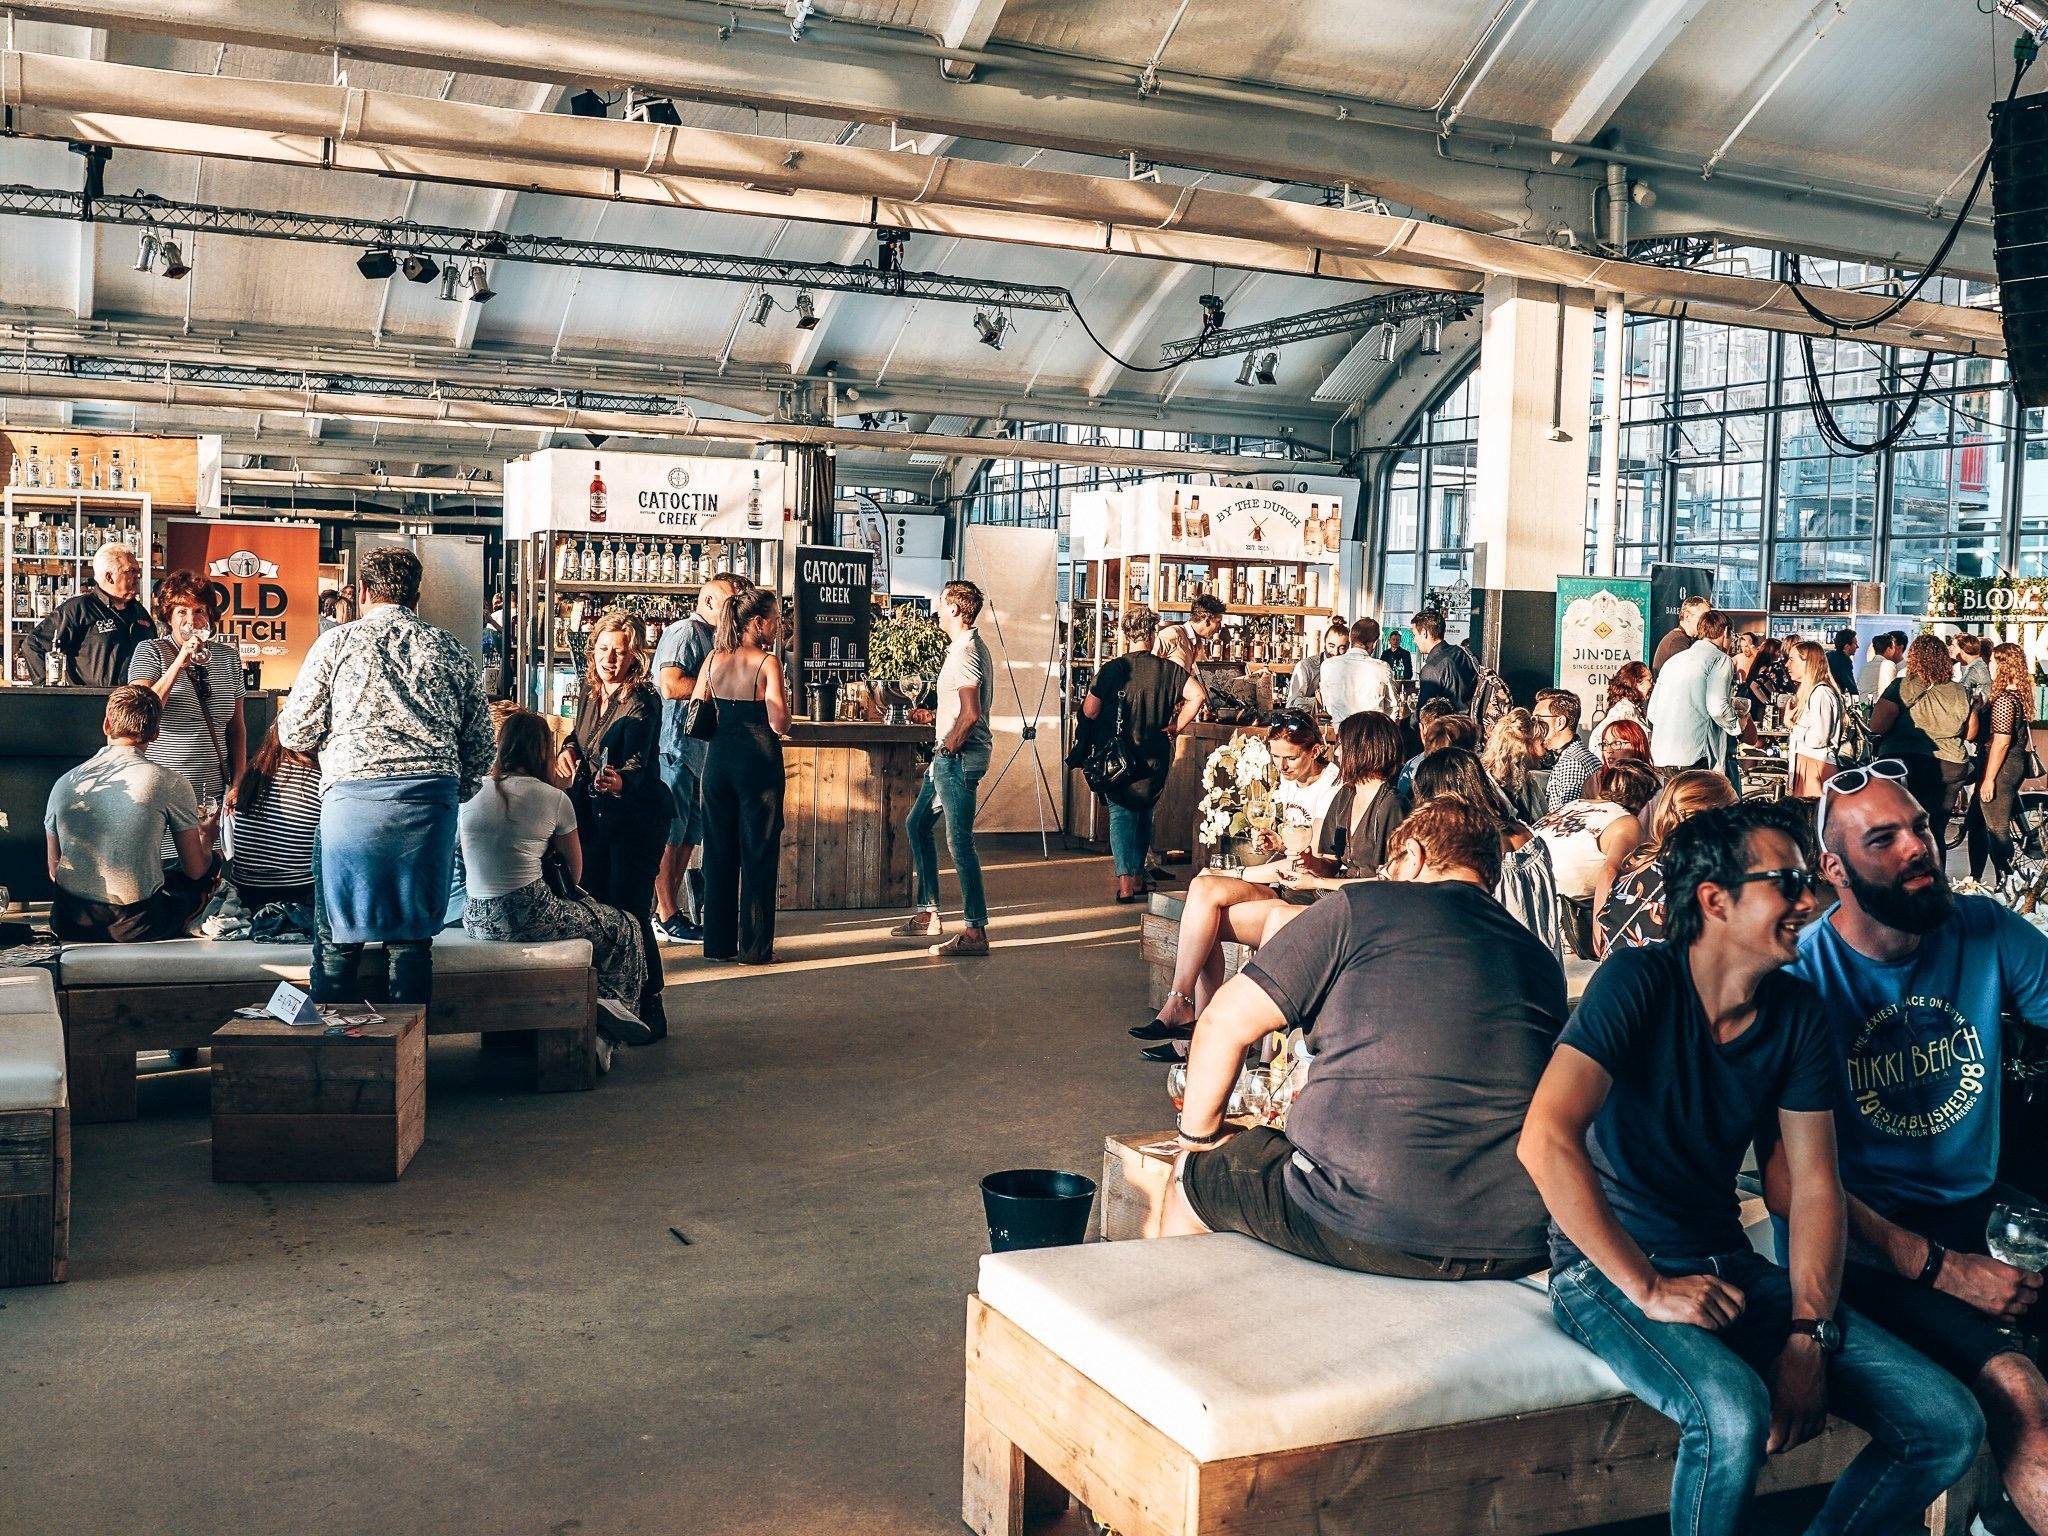 Ginfestival Rotterdam overview, Alles over gin.